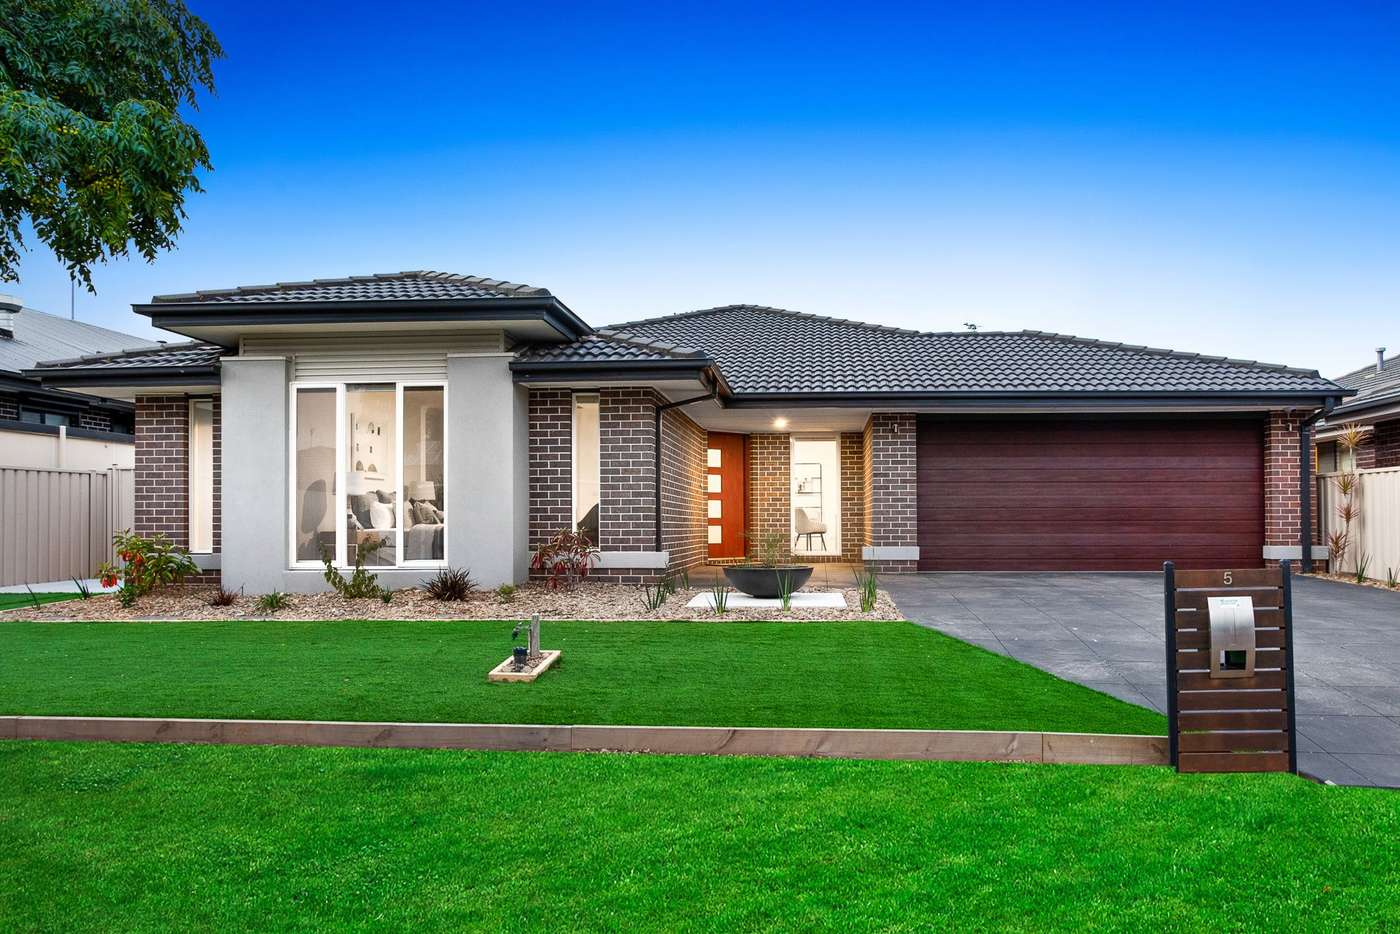 Main view of Homely house listing, 5 Nevis Place, Taylors Hill VIC 3037